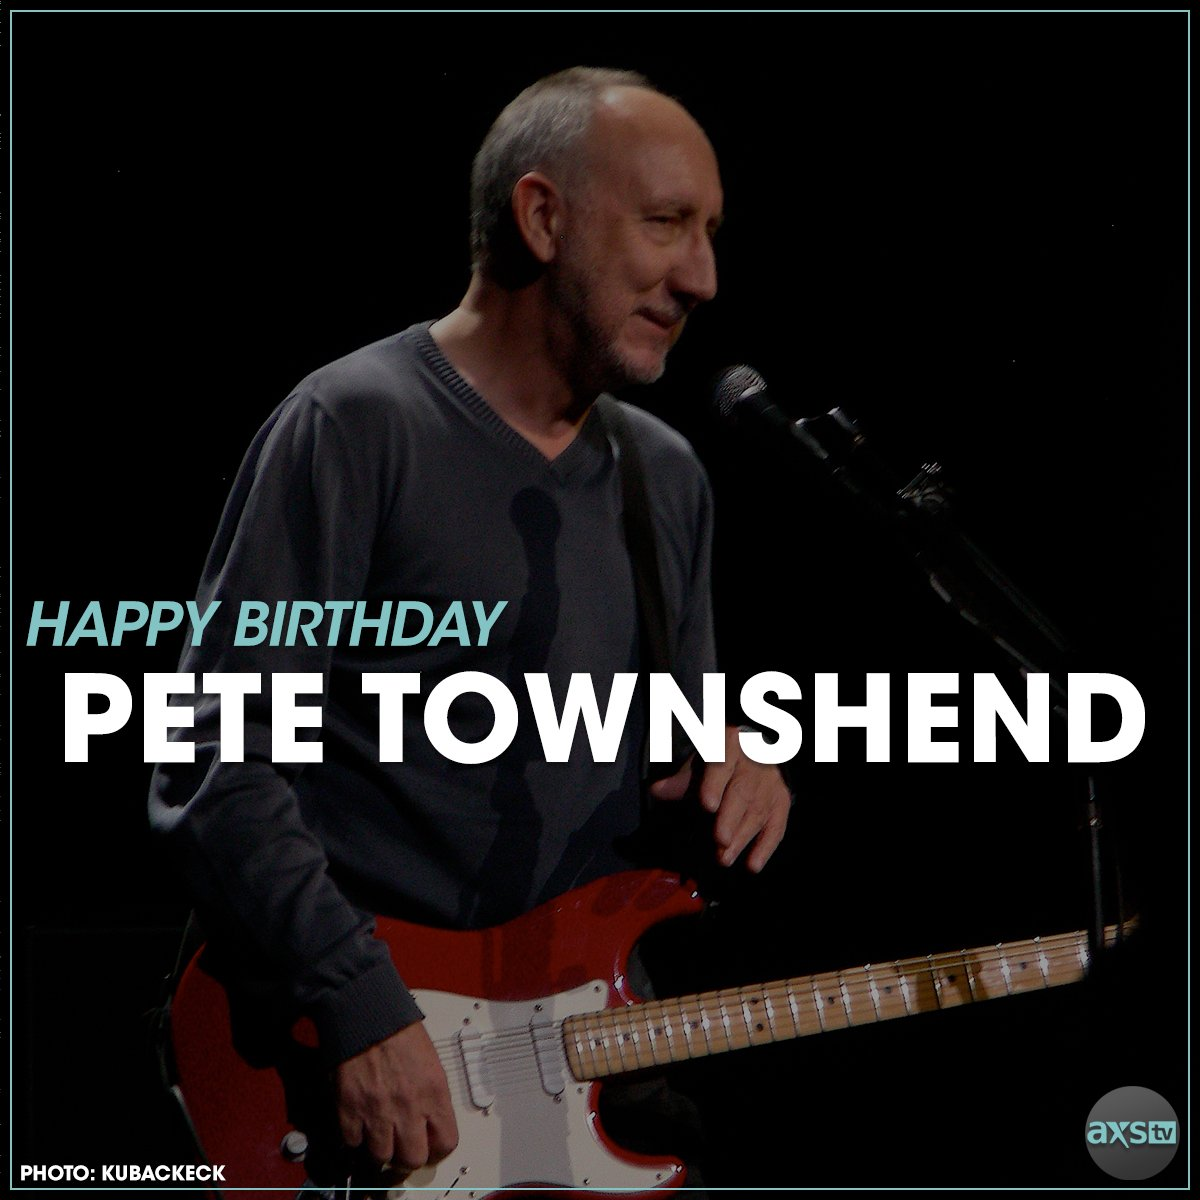 Happy Birthday to Pete Townshend of